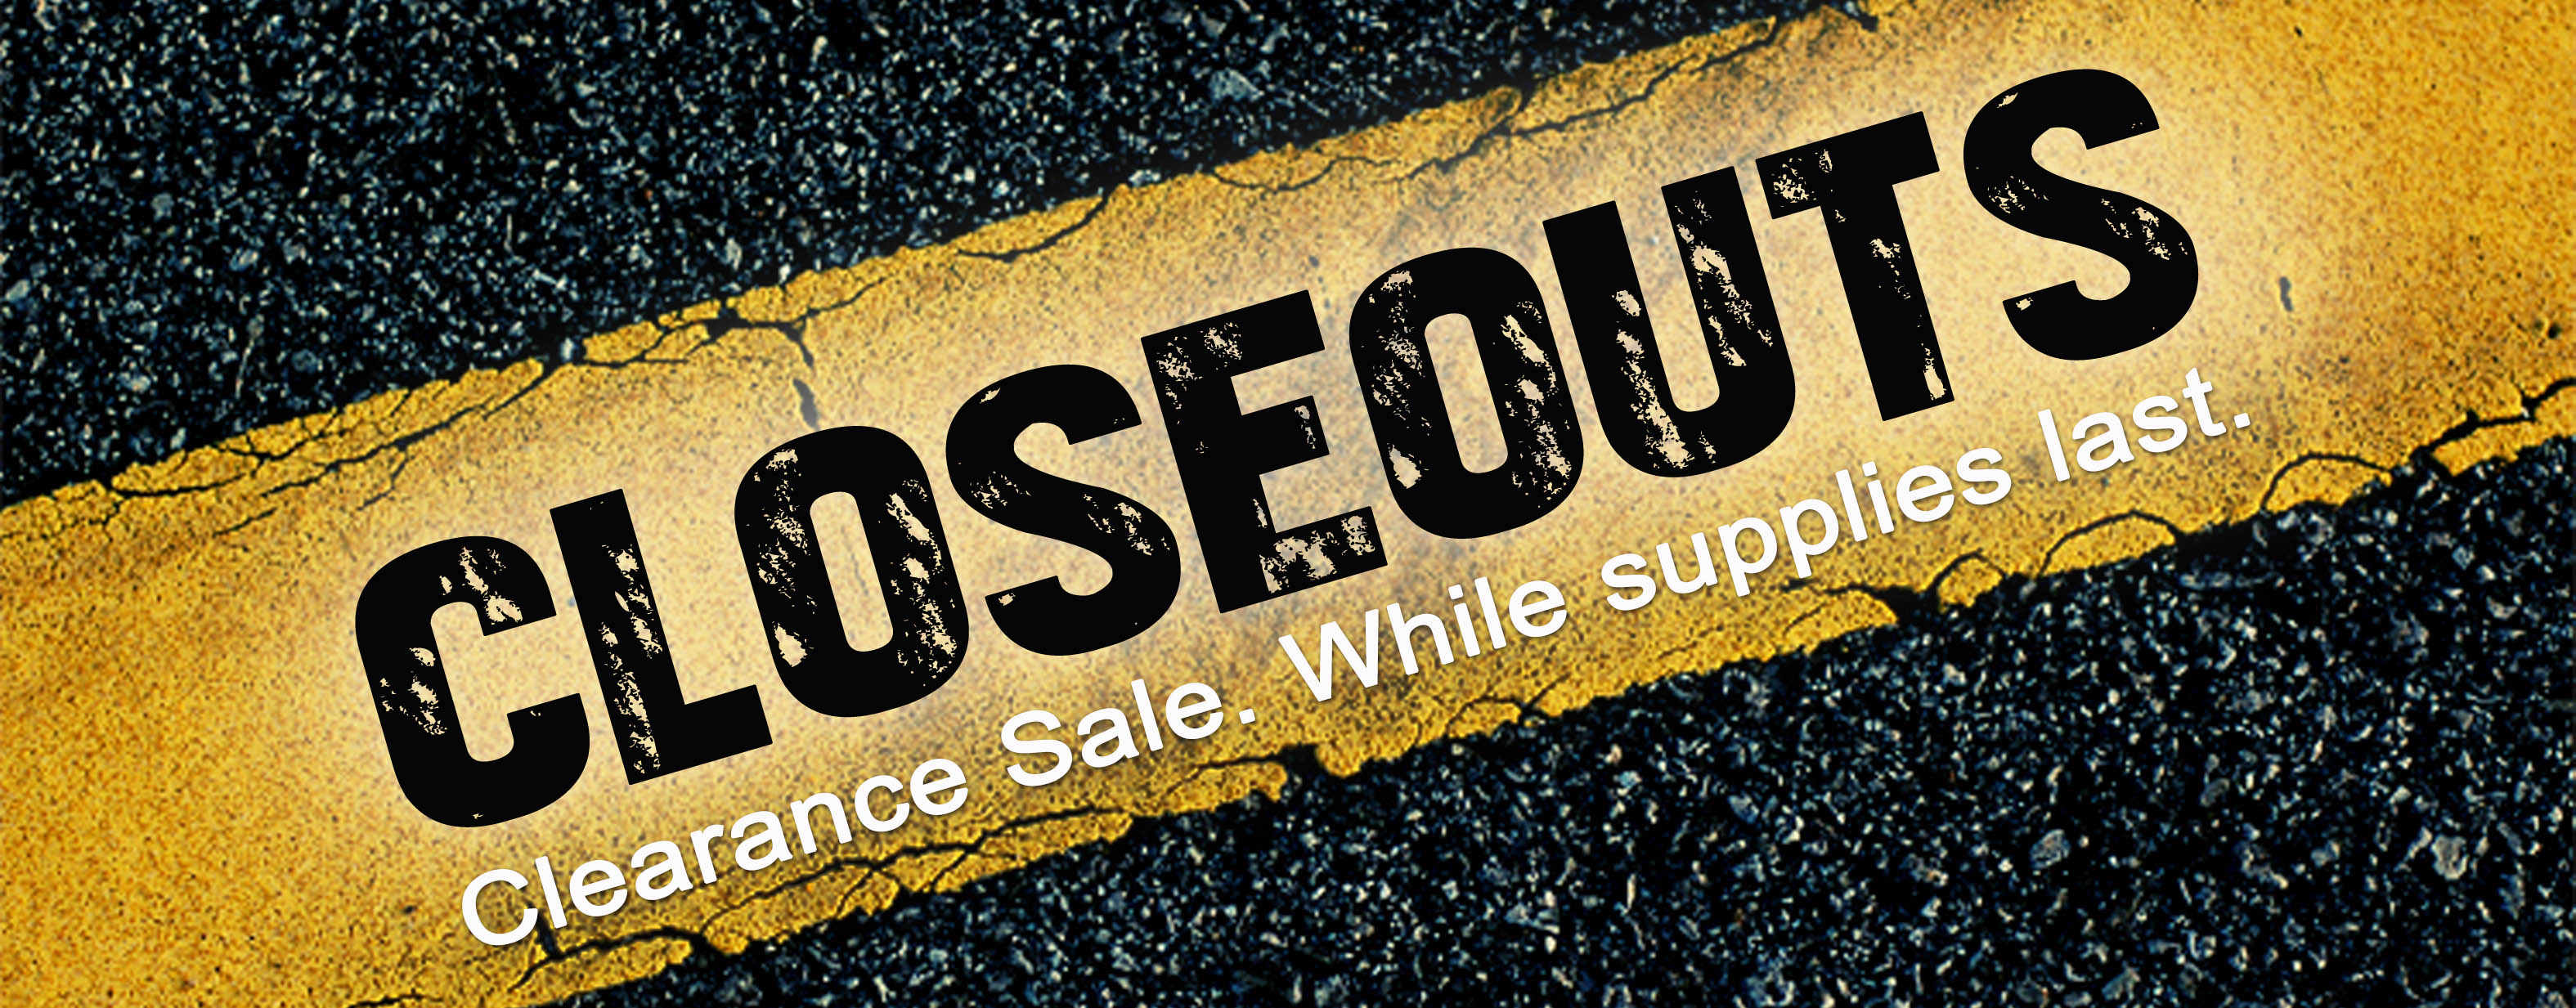 closeouts-2015.jpg